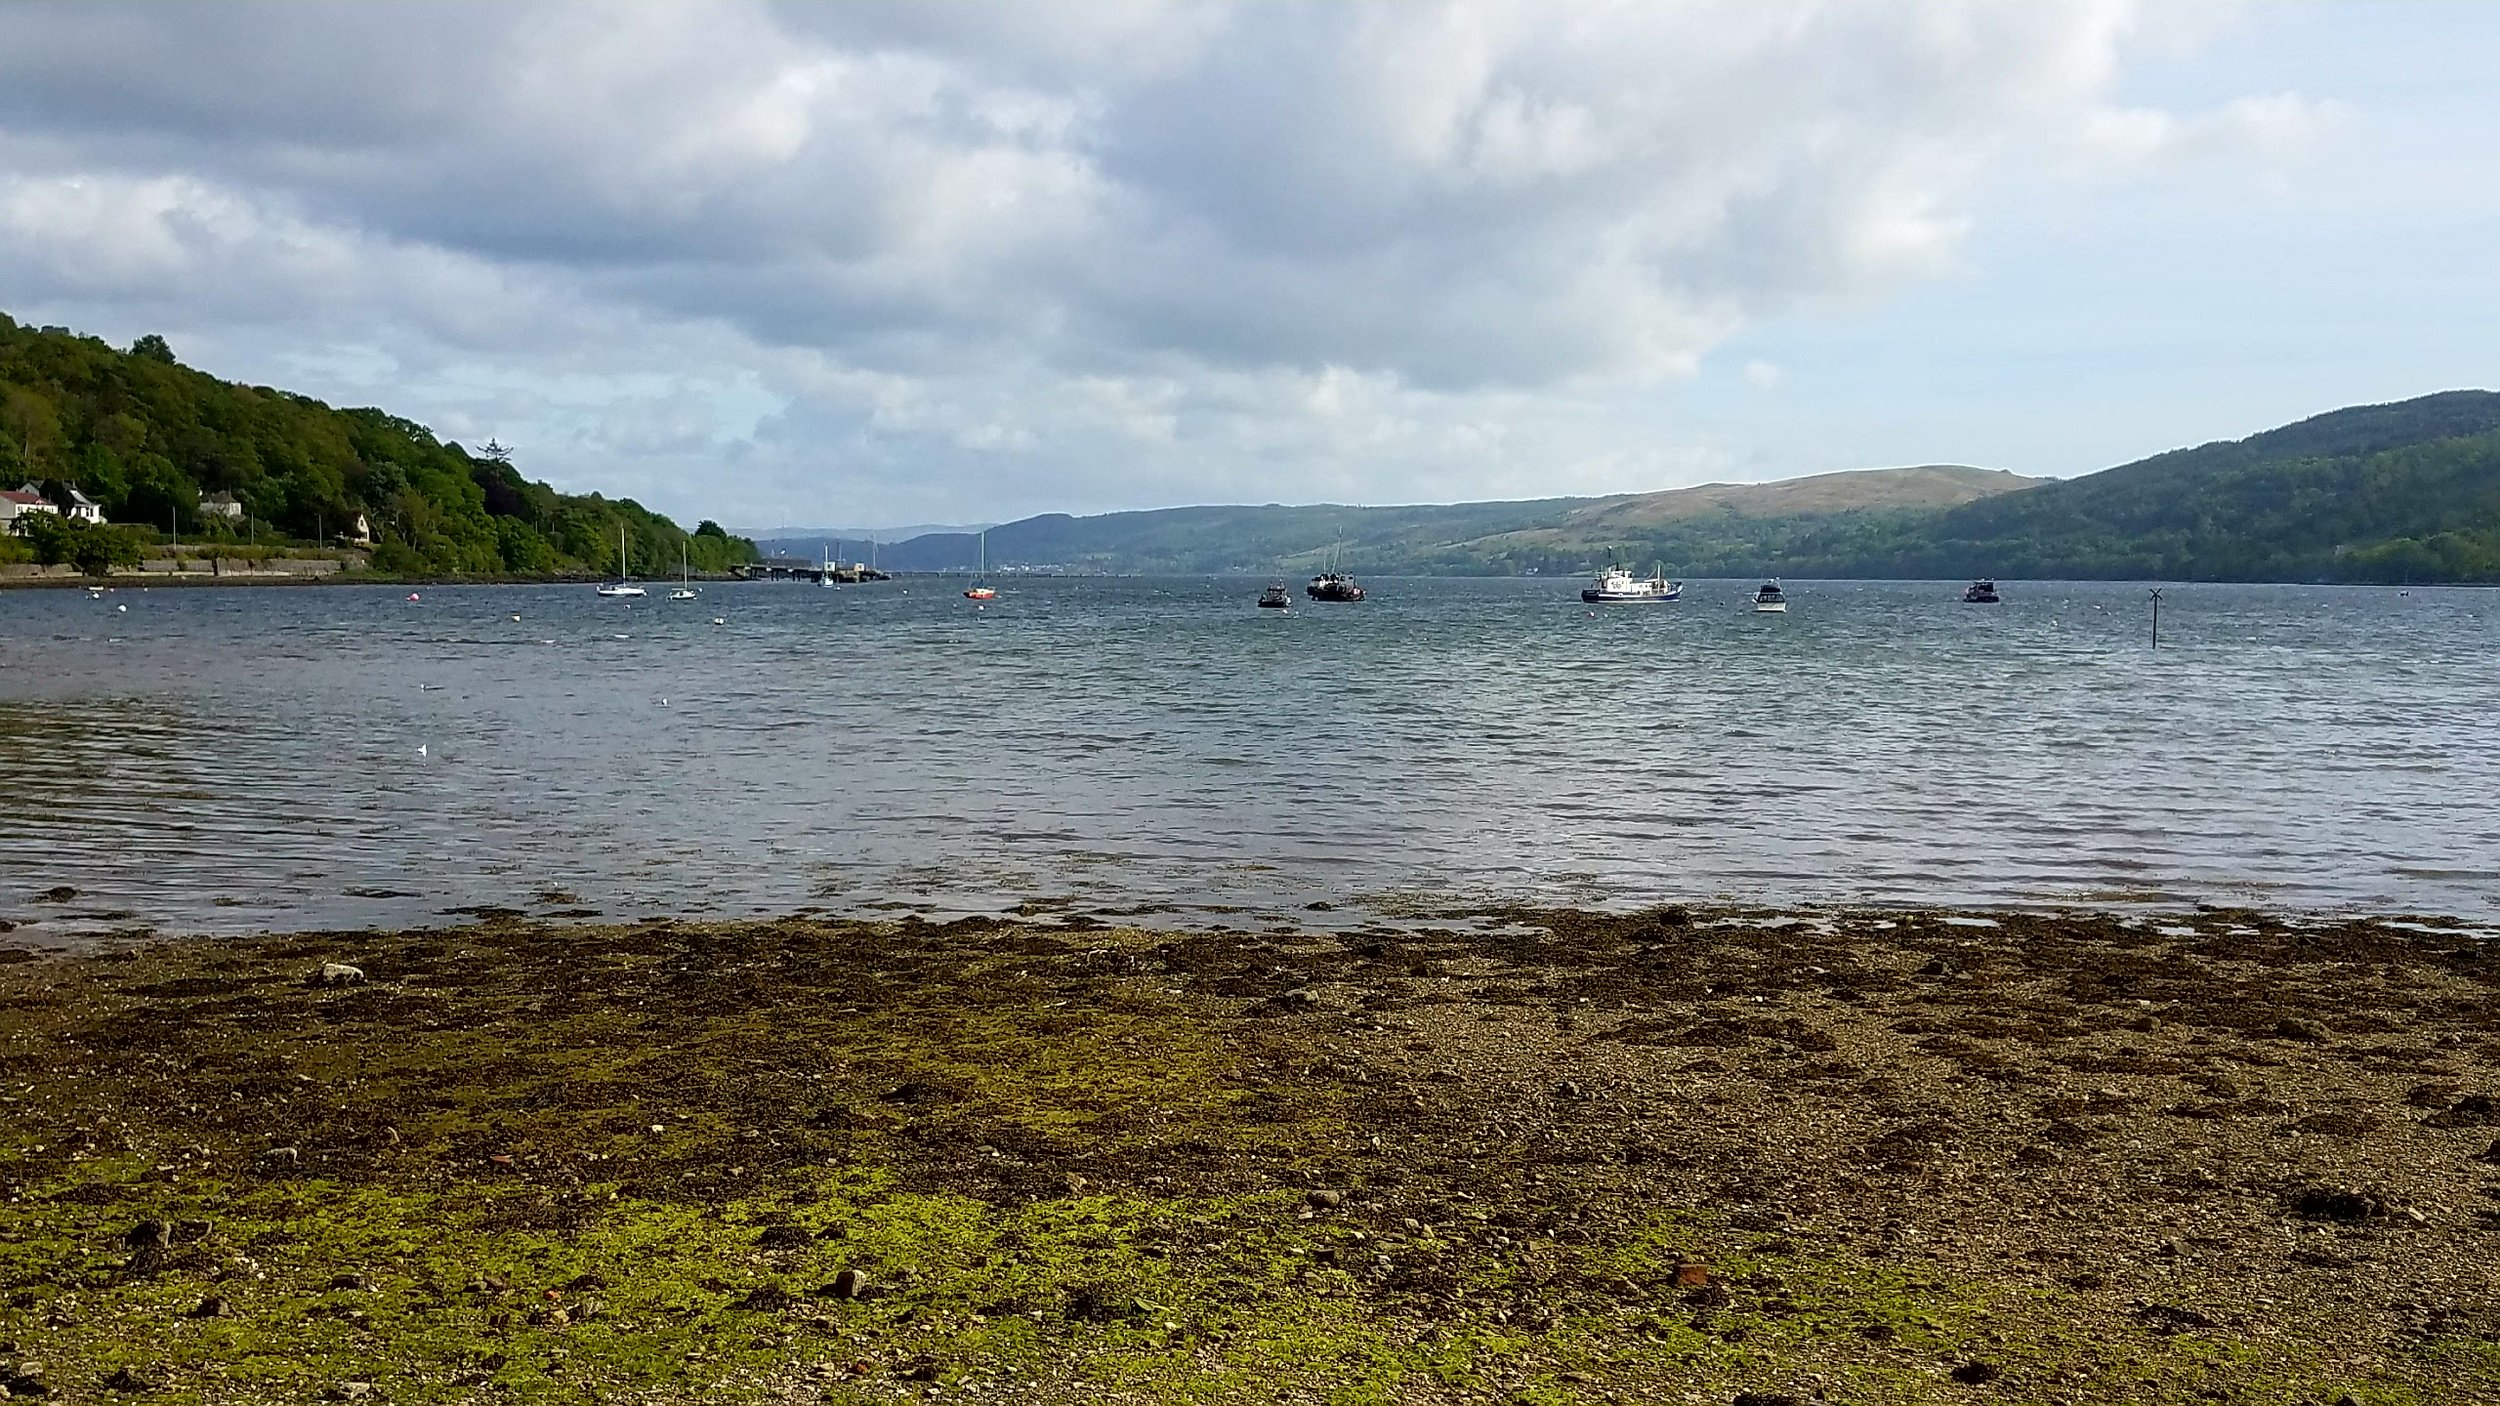 Beauty from the end of Gare Loch